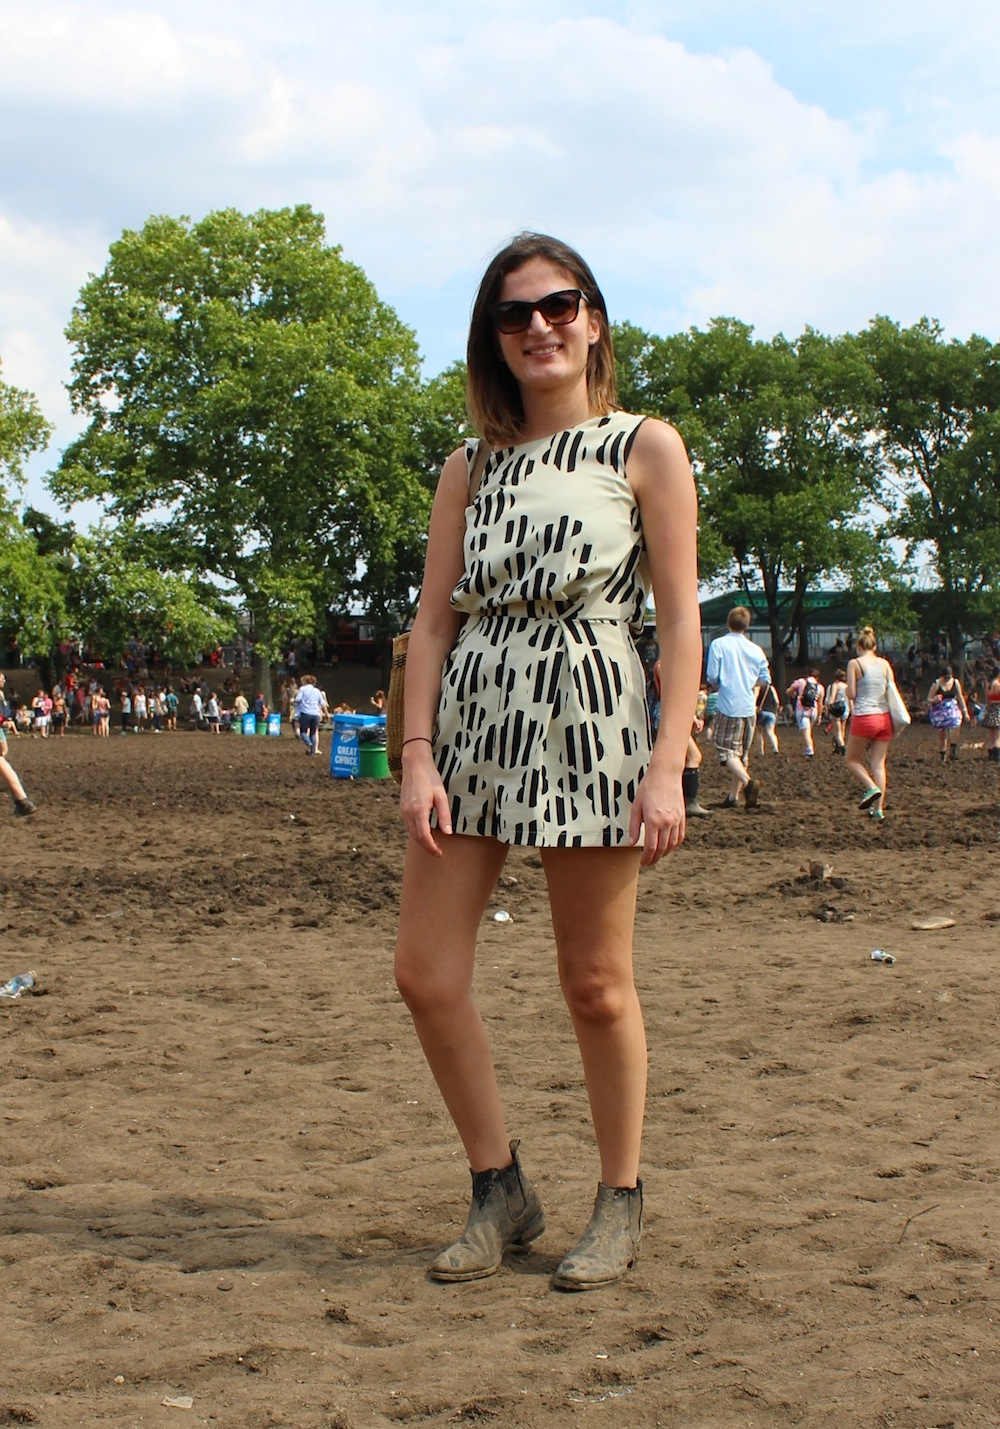 Tina from Australia at Governors Ball 2013 Style